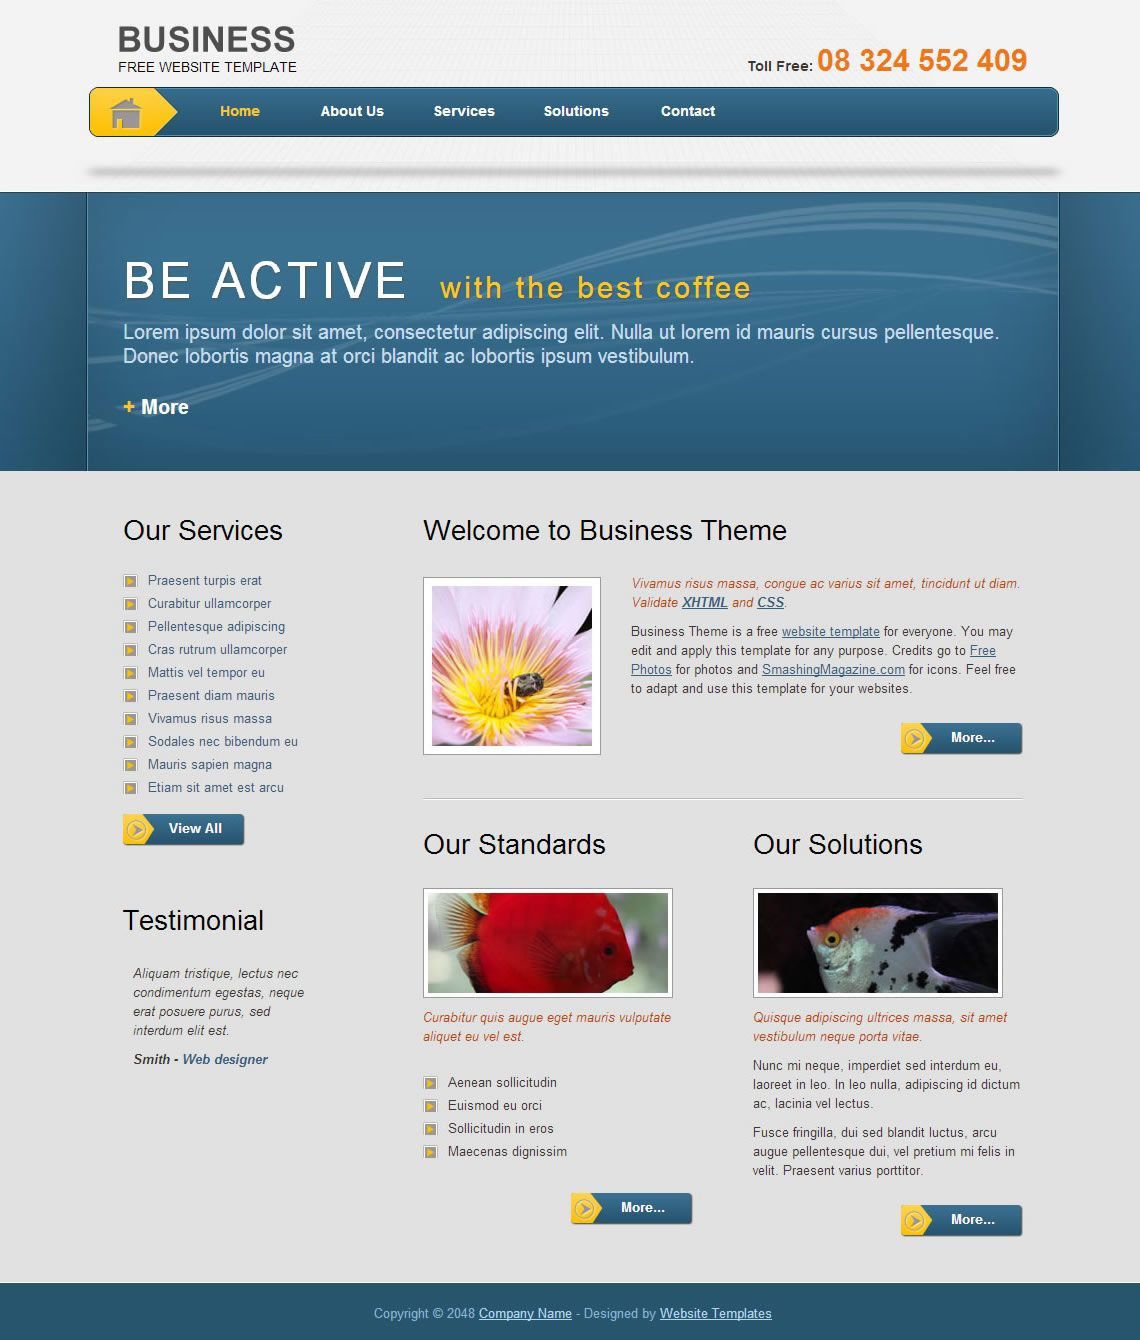 000 Fascinating Free Web Template Download Html And Cs For Busines Concept  Business Website Responsive WithFull